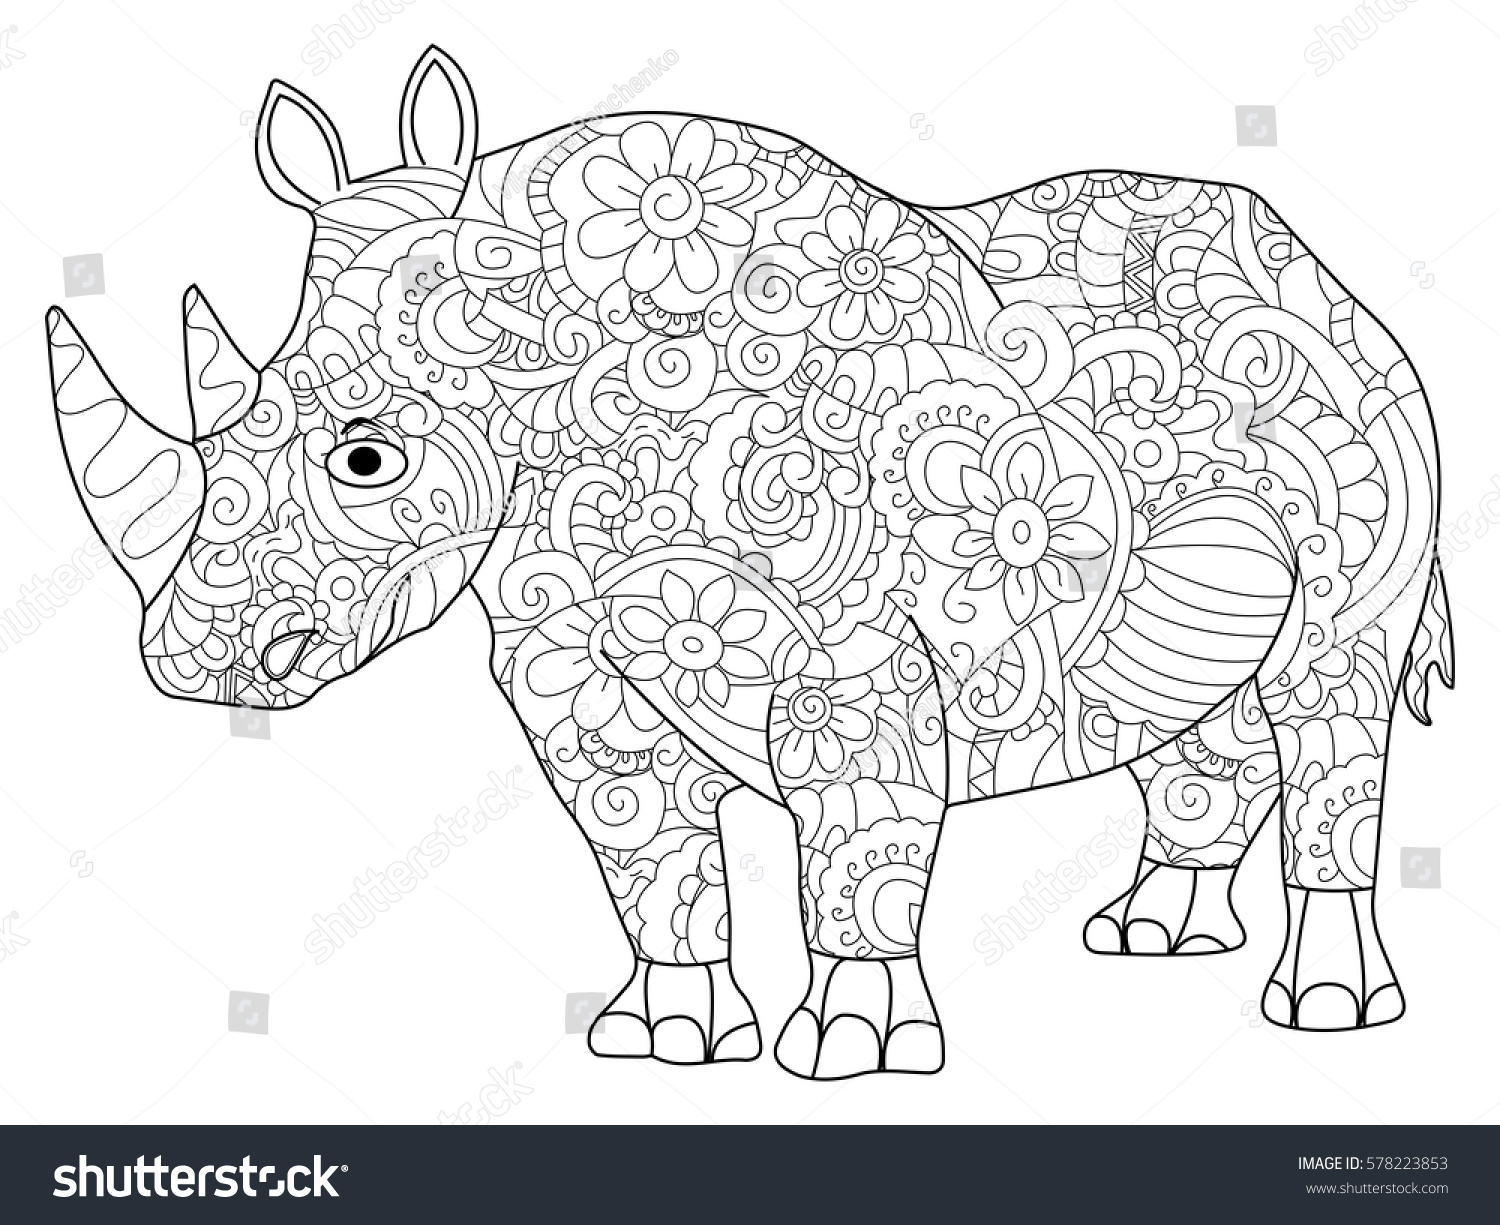 96 Coloring Book For Adults Animal